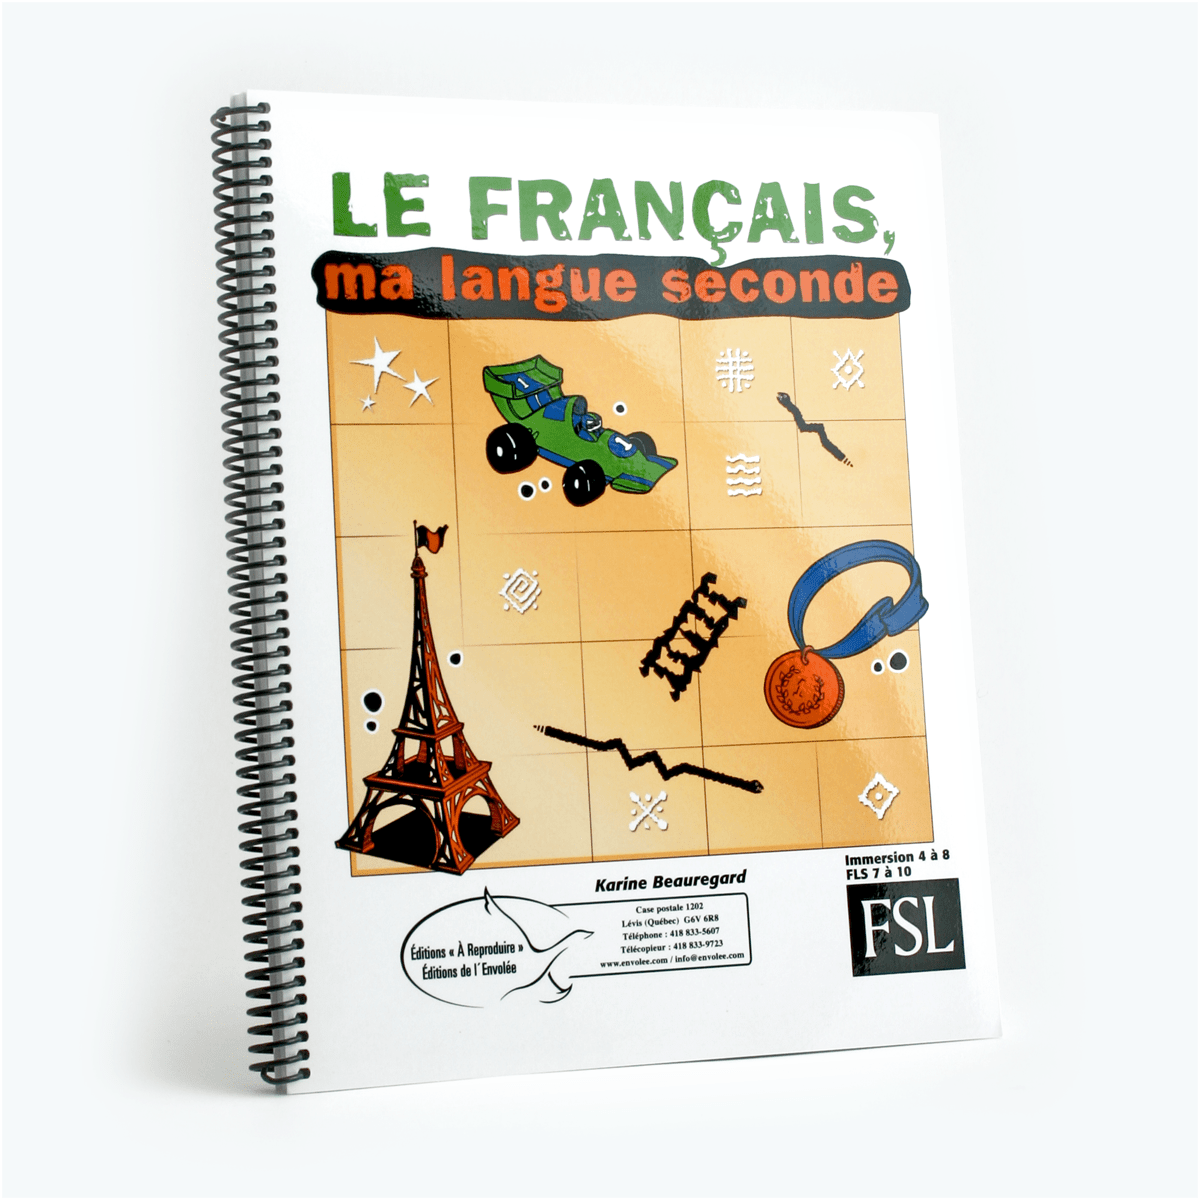 Le français, ma langue seconde